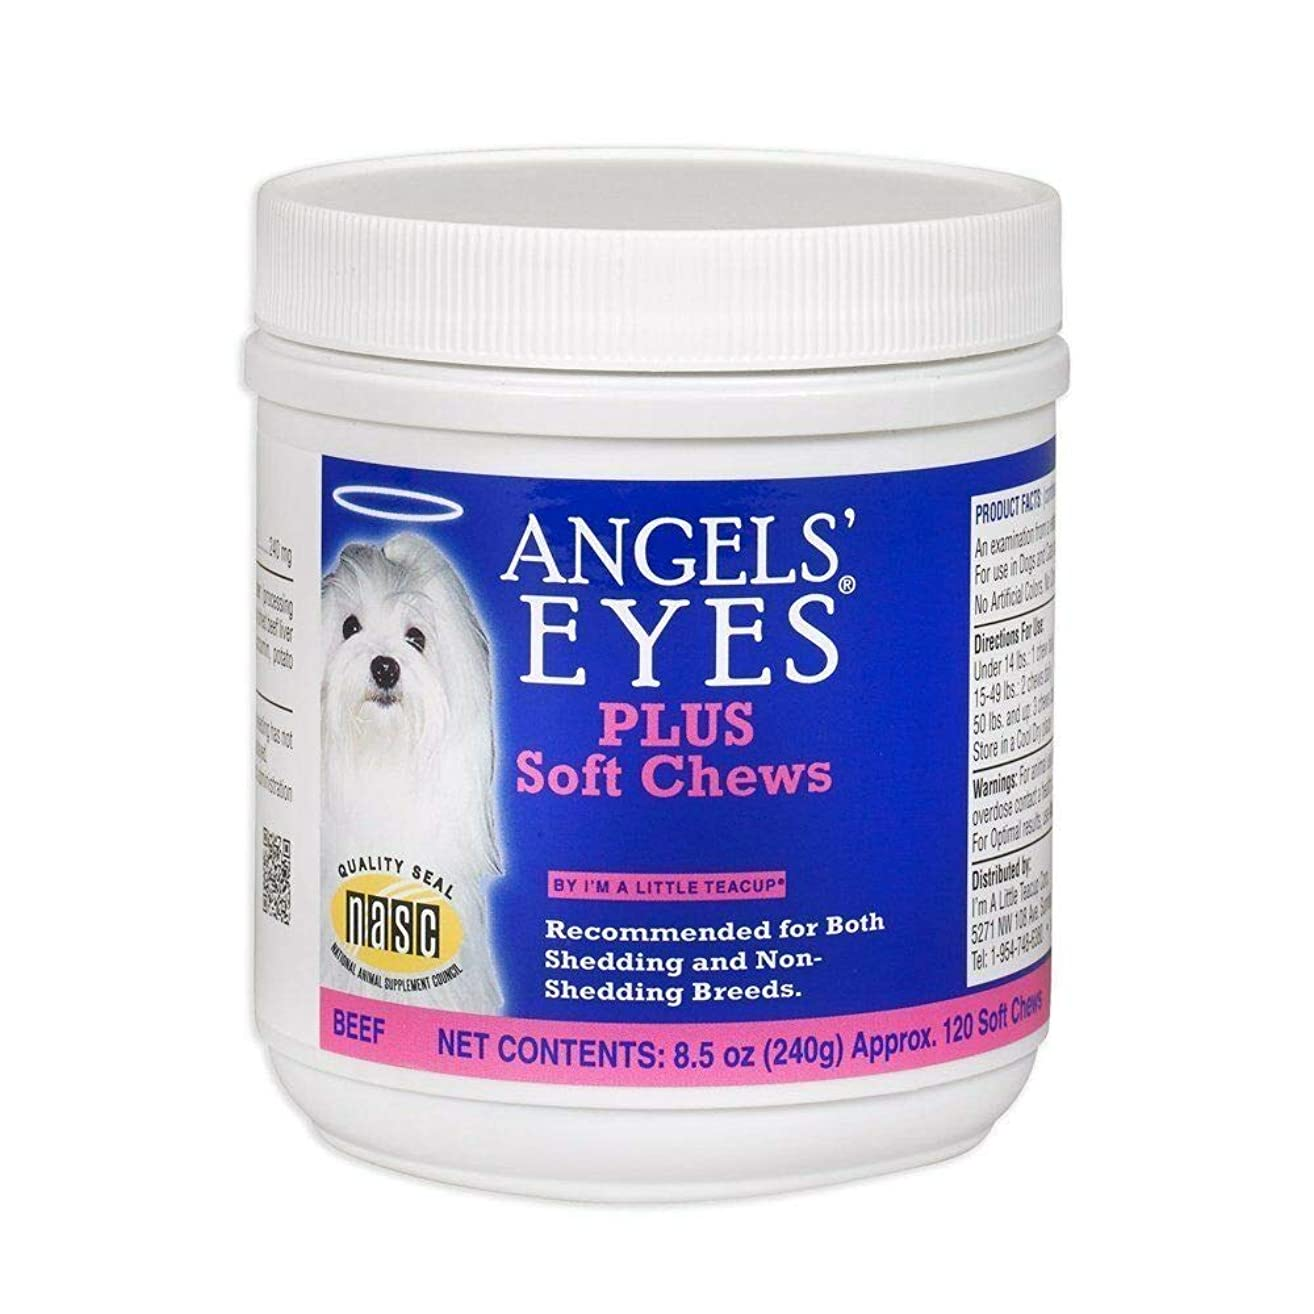 Angel's Eyes Soft Chew Beef Natural Tear Stain Remover for Dogs 120 Count (240g)